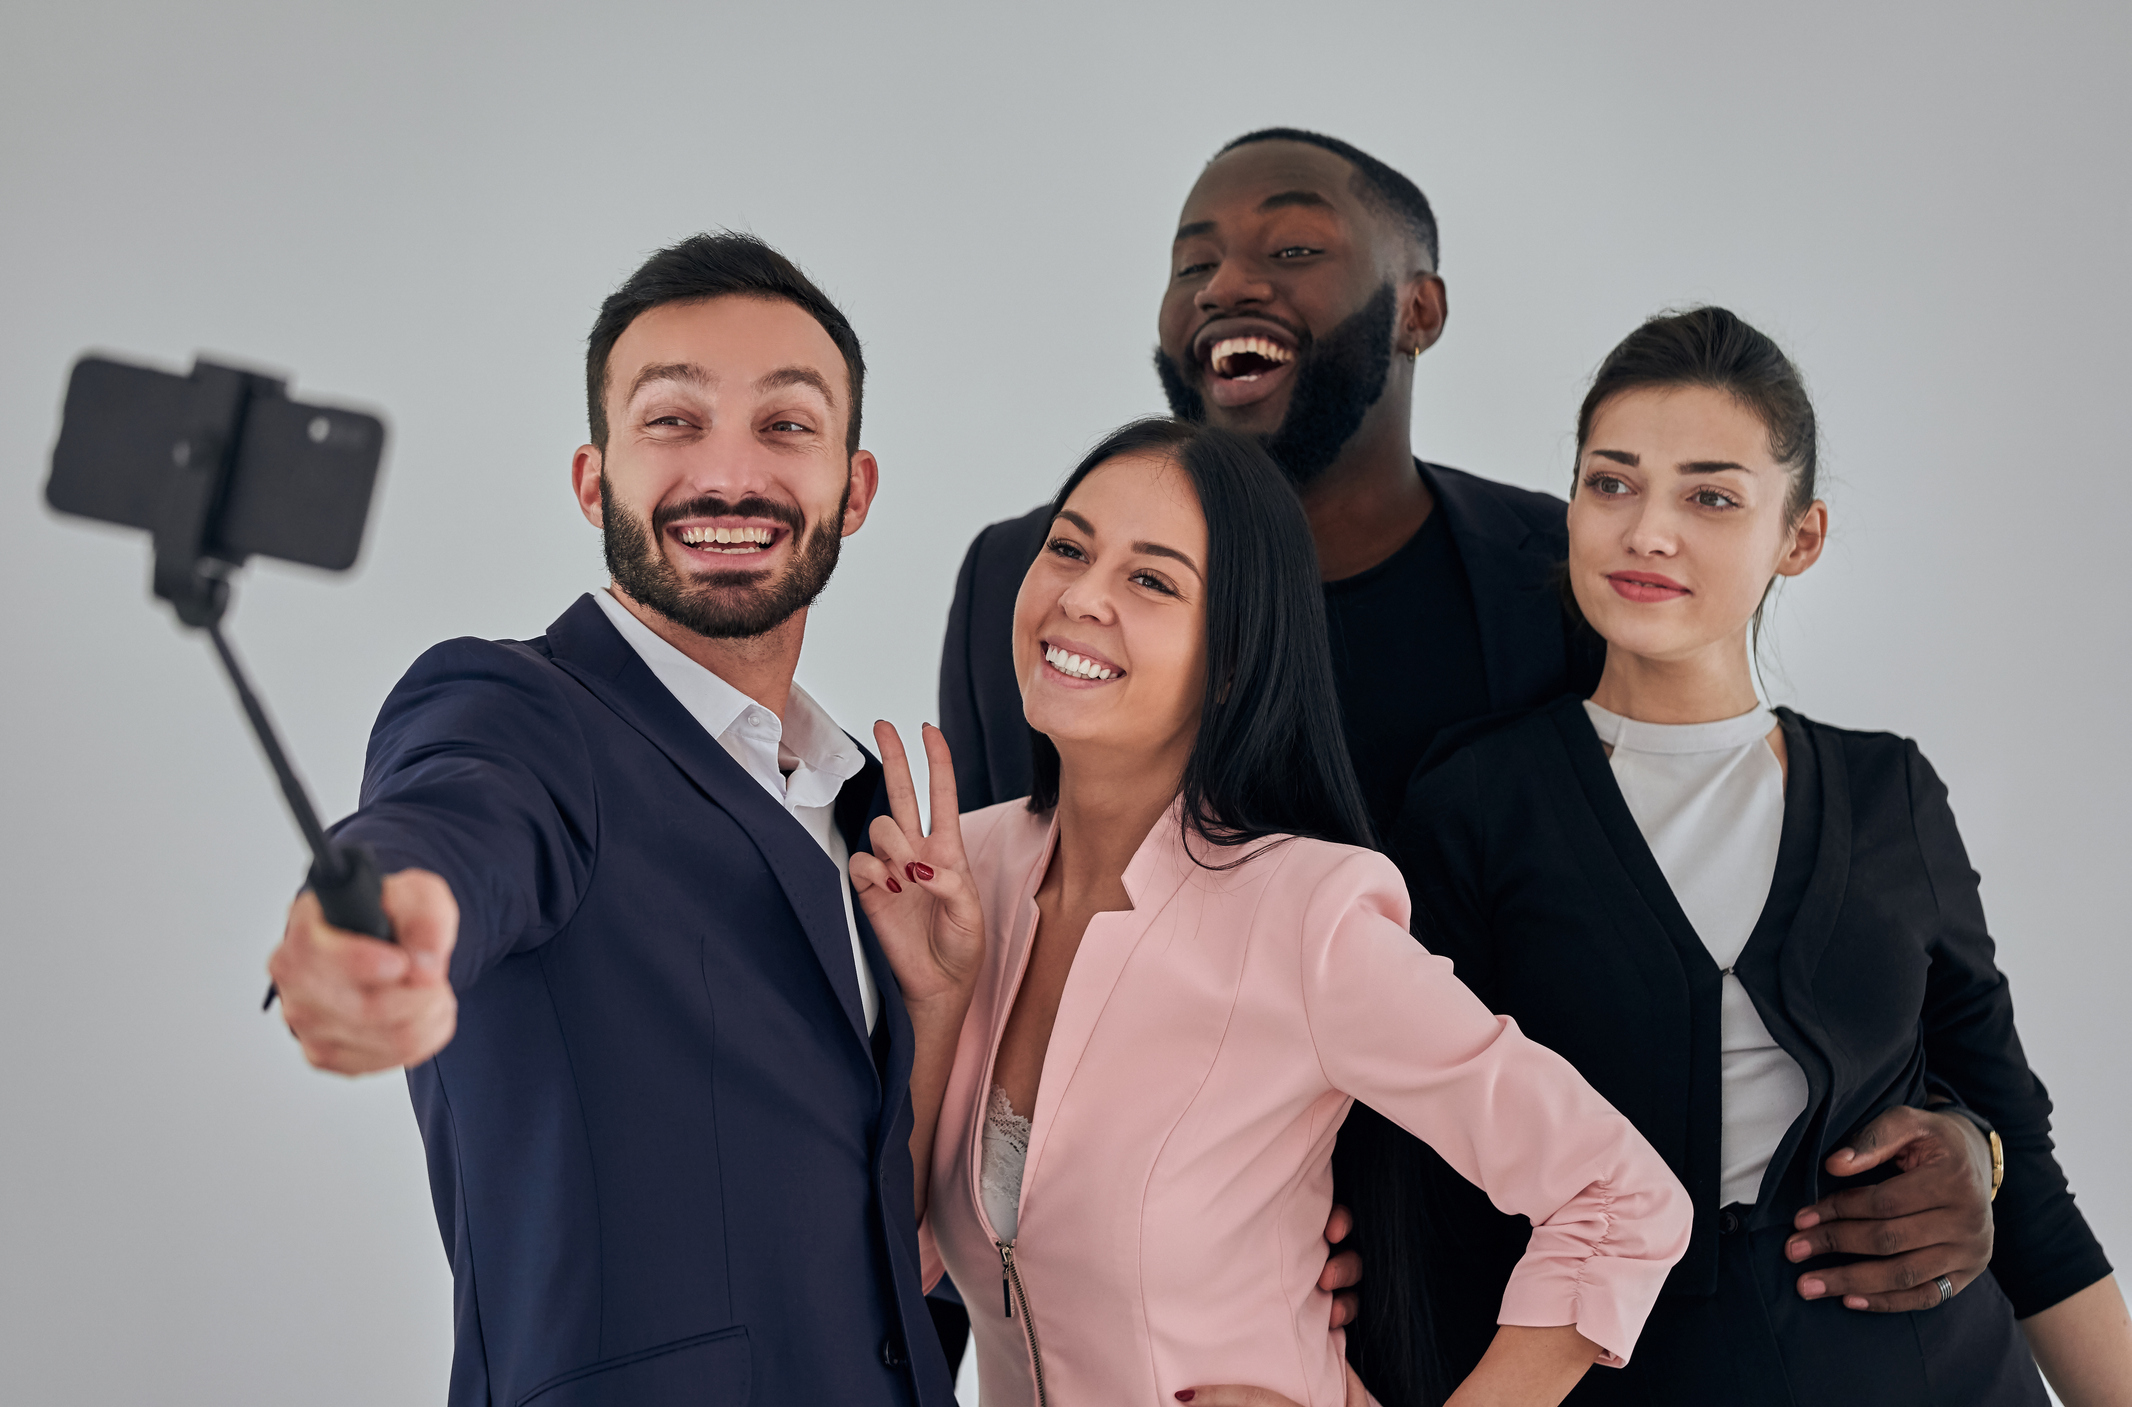 The four happy business people making selfie